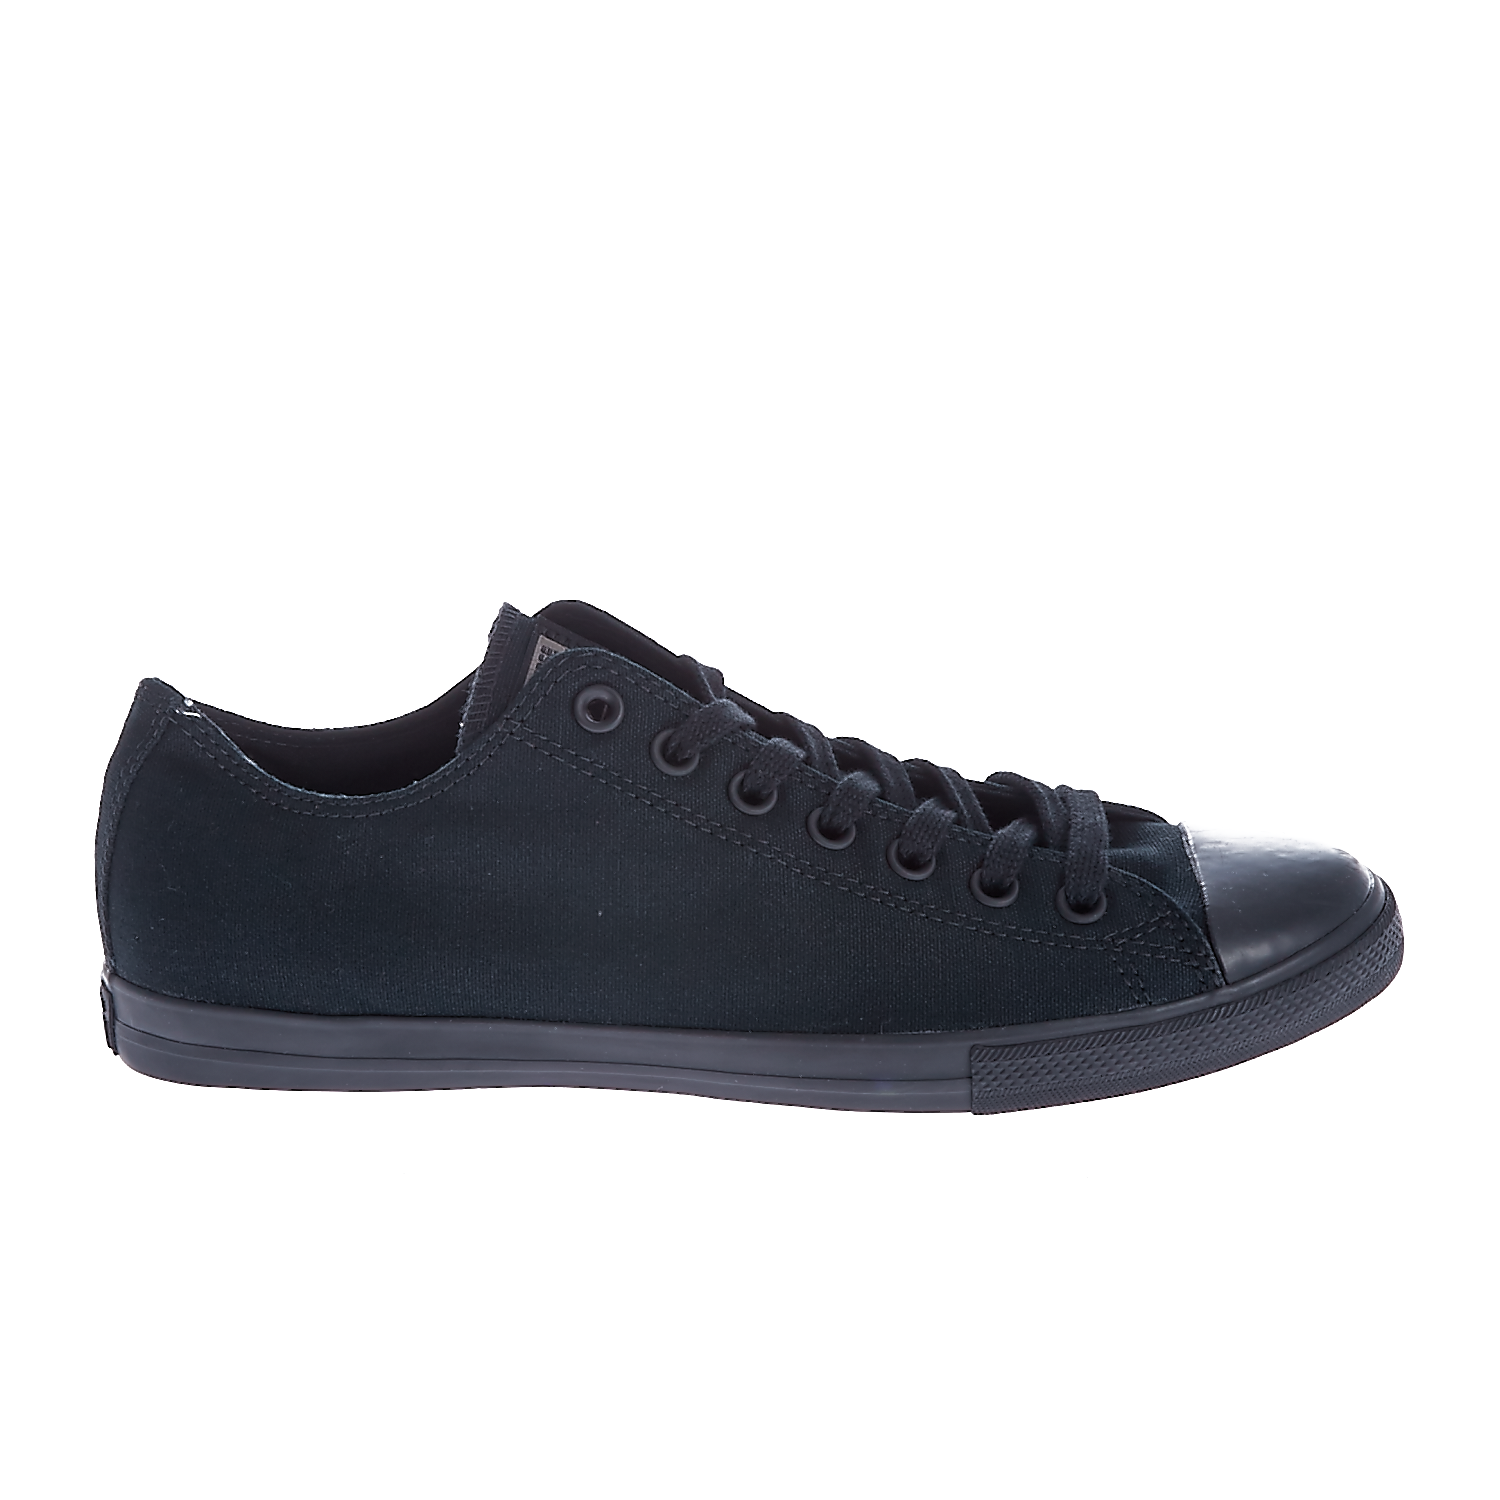 CONVERSE – Unisex παπούτσια Chuck Taylor All Star Lean Ox μαύρα